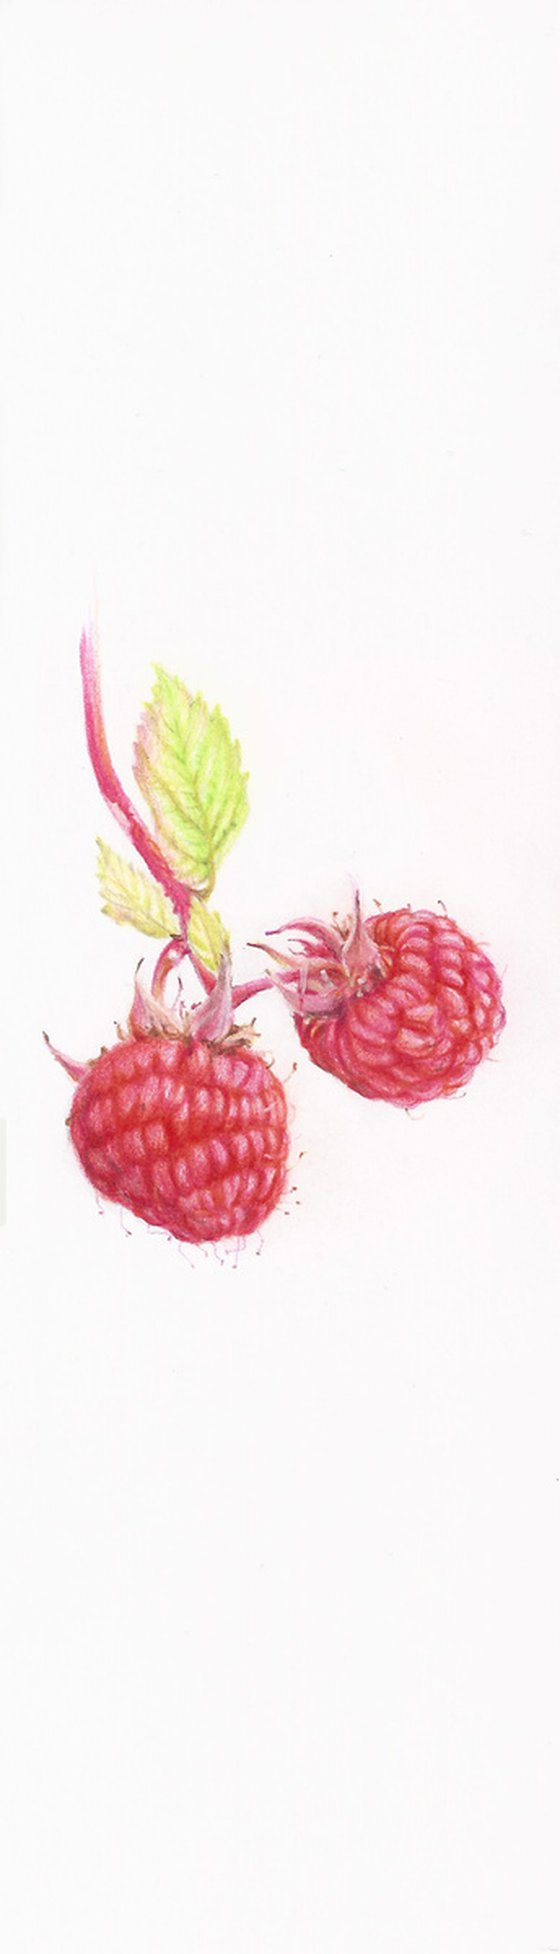 My Wild Berries as Bookmarks - The Raspberry